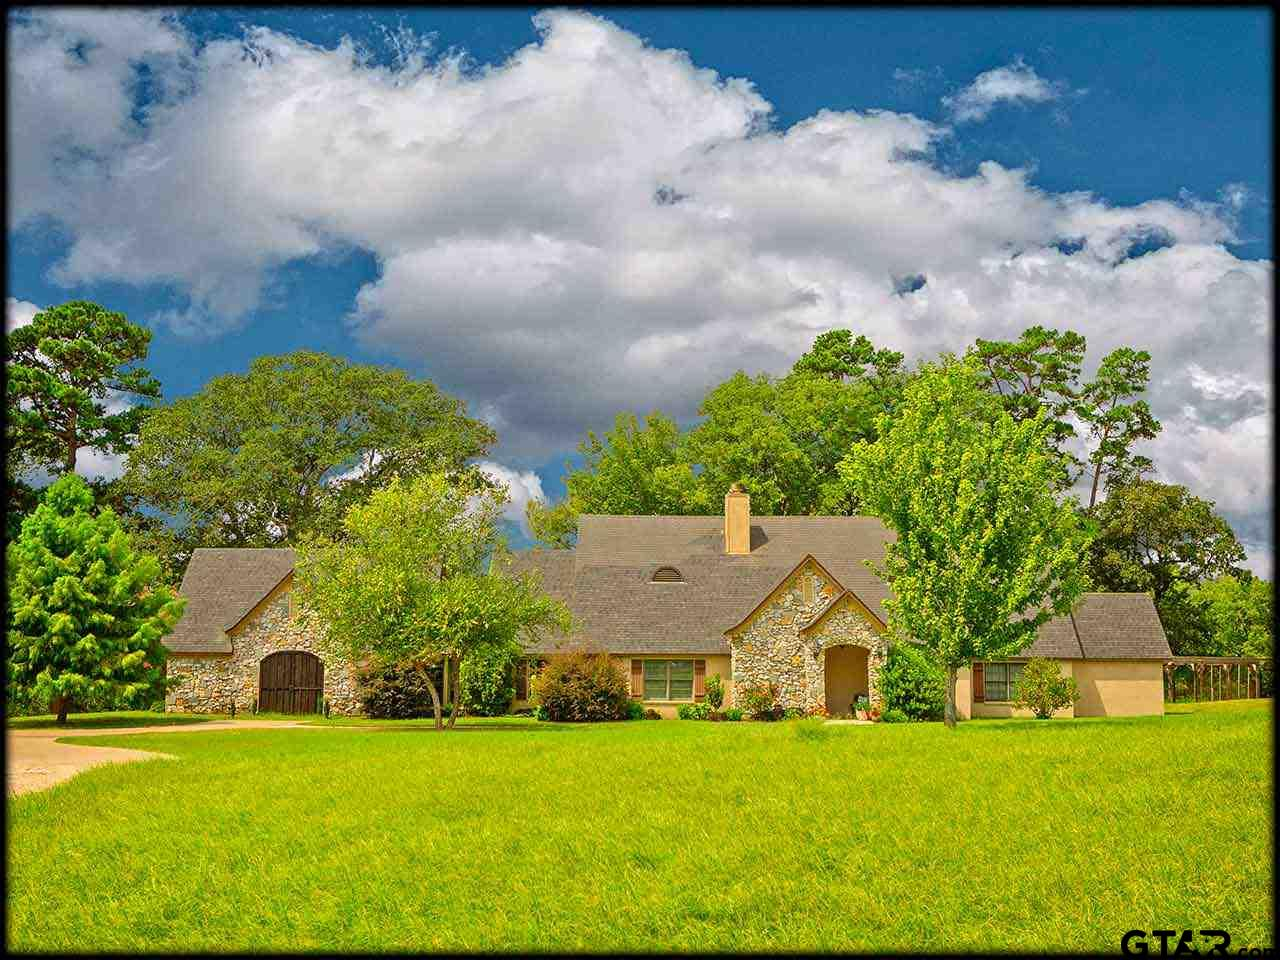 Gated 37 Acre Gentleman's Ranch with 40'x60' Shop. Approximately 25 minutes South of Tyler, is an updated 4 bedroom, 4 bath custom home on acreage that is 60/40 coastal pasture & heavy woods. Game & wildlife abound with live creeks & wooded cover. For the Gentleman, the impressive 40'x60' insulated metal shop has 3 overhead doors, 6 windows, RV storage, 200 amp electrical. Stately & inviting home has rear entry 2 car garage with shop area, sun room, formal dining & mud room with fabulous storage. Expansive & open living space has stone fireplace, breakfast area, professional kitchen with Wolf range. Amazing nature views out the kitchen windows! Comfortable master bedroom with walk-in closet, master bath has large shower, corner tub, dual sinks and lovely lighting. 2 guest rooms, 2 guest baths on main floor. Upstairs is private guest suite with living, bedroom & adjoining private bath. Wrought iron fencing & gate with keypad, 1,000 feet crushed concrete driveway. Numerous updates!